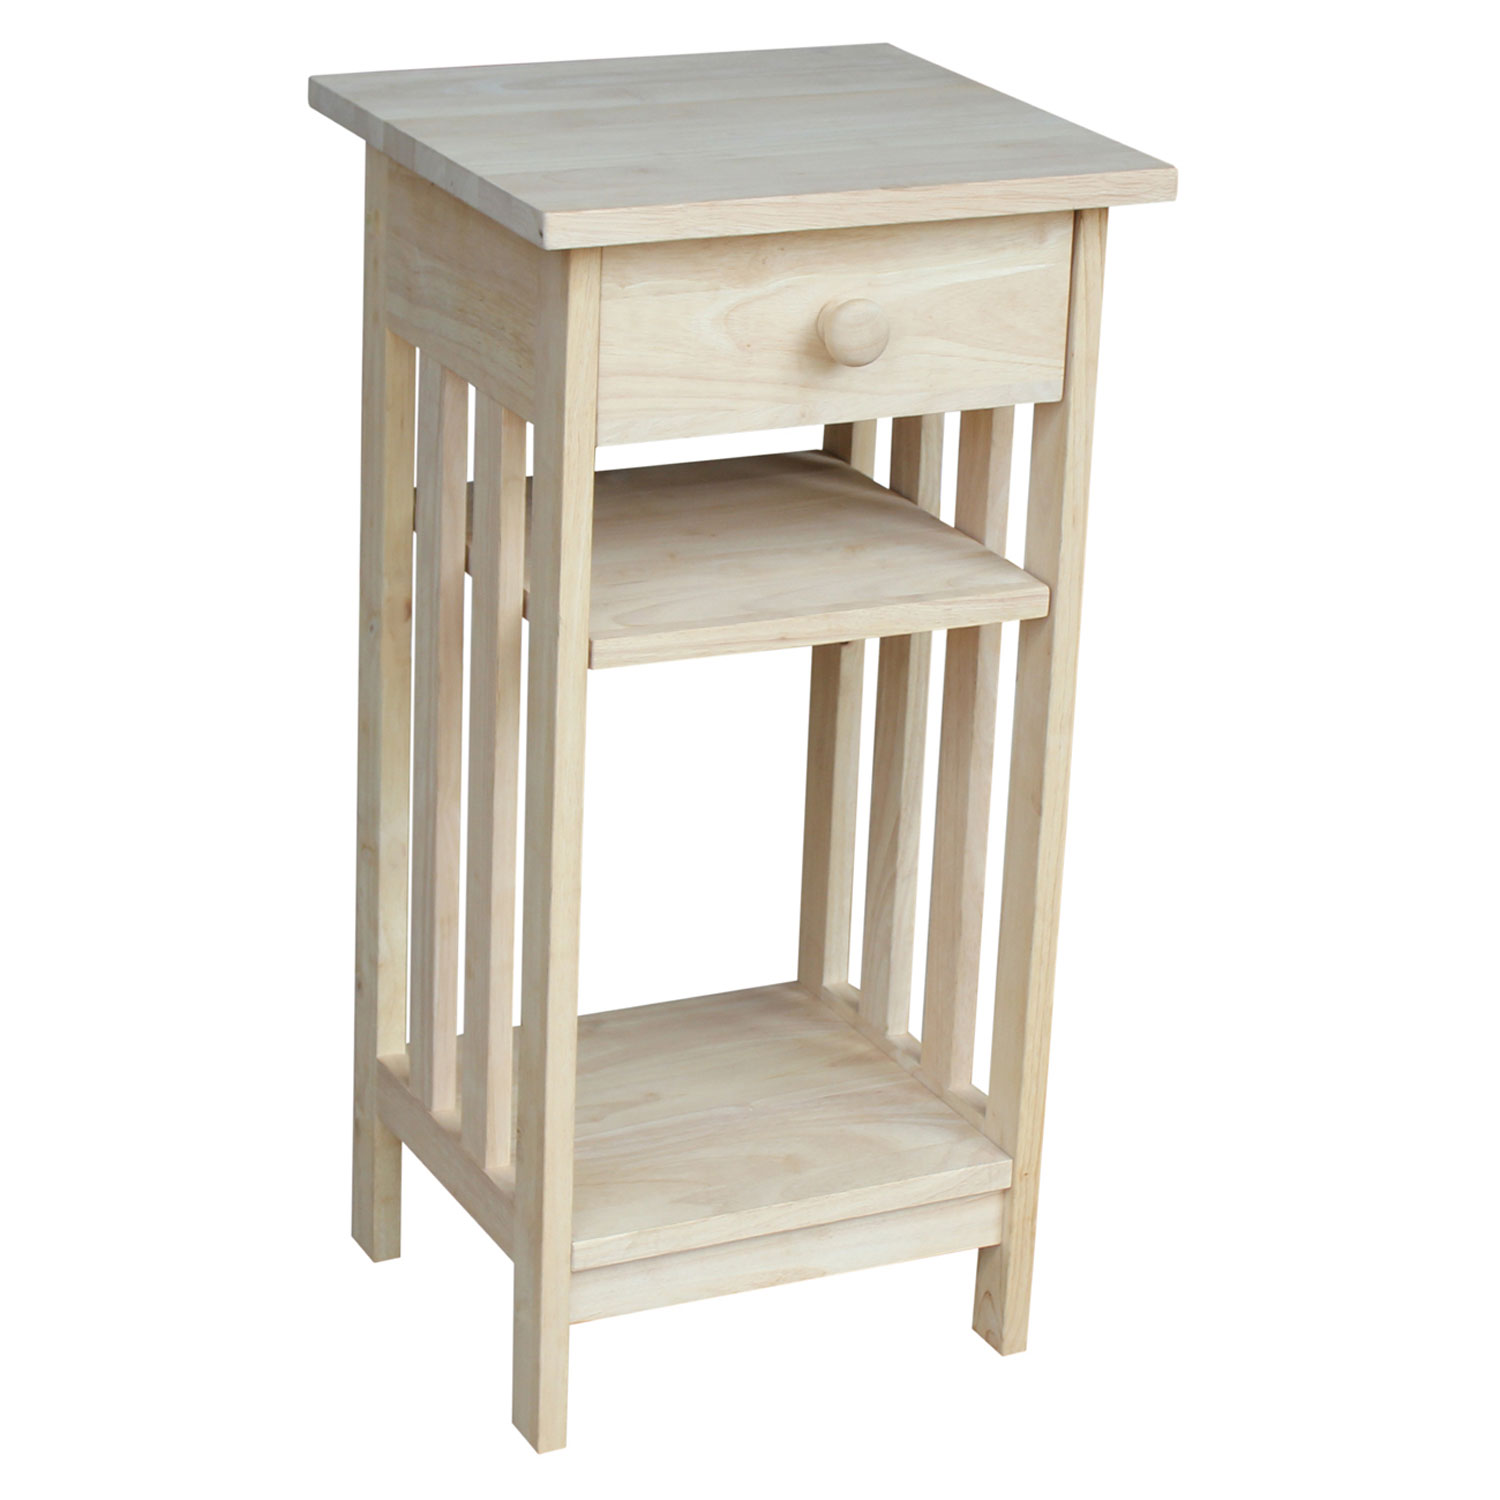 international concepts mission unfinished wood telephone stand with accent table hover zoom wicker rattan end tables inch square tablecloth ikea white bench simple quilted runner